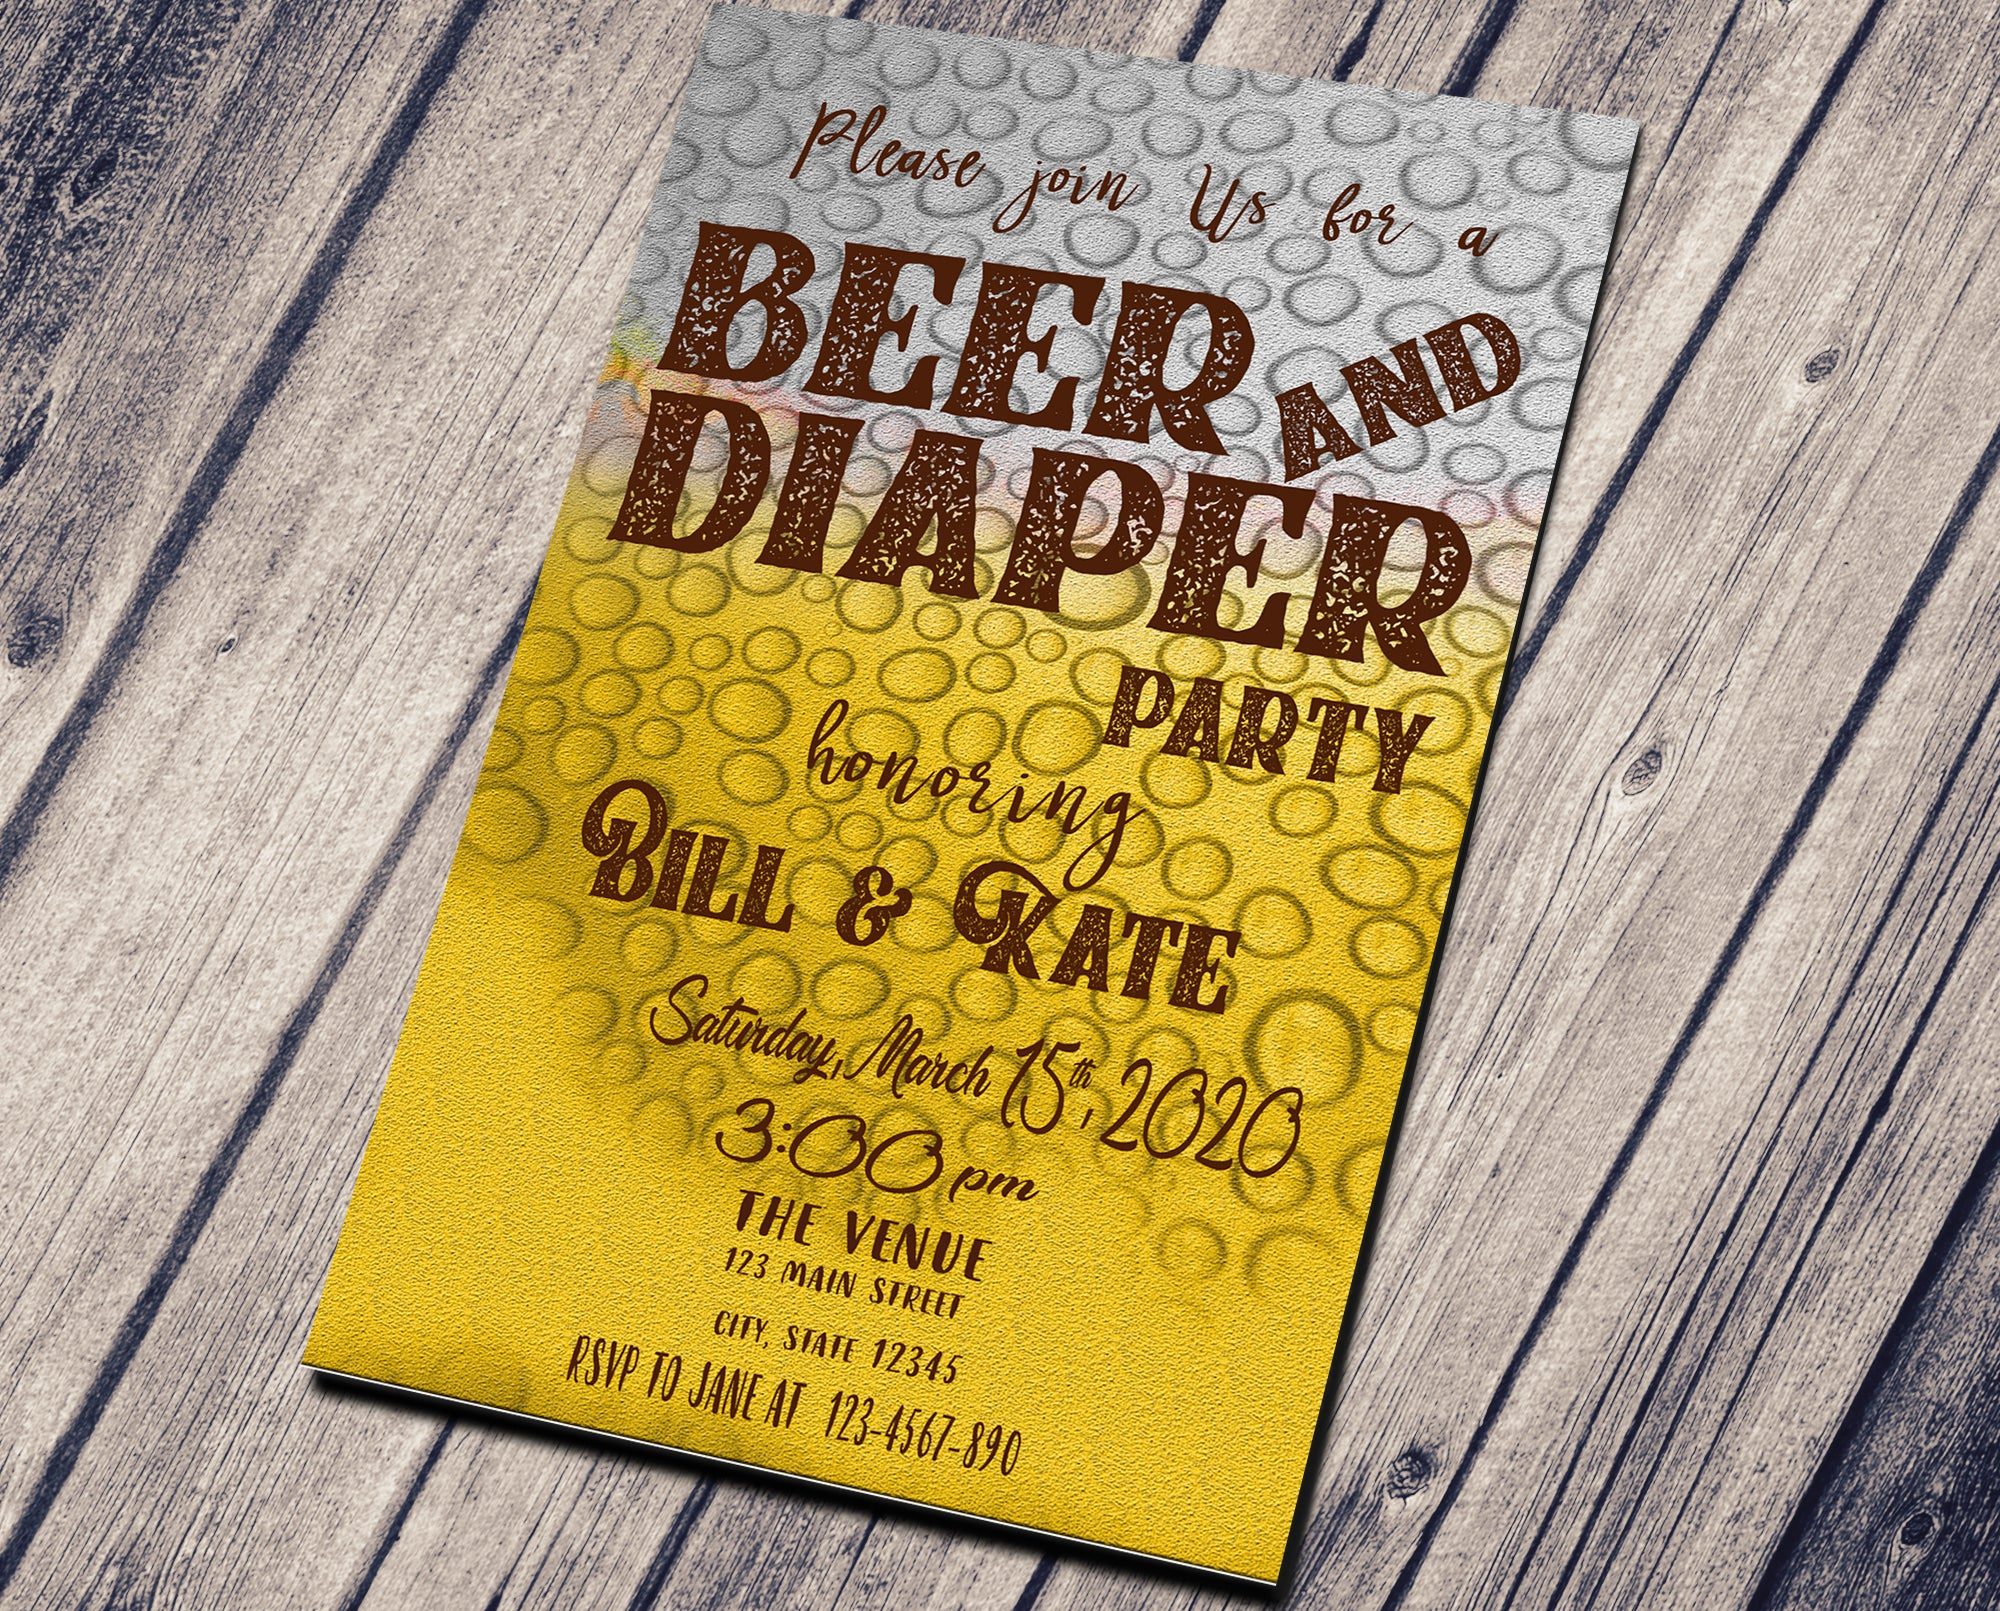 BEER AND DIAPER PARTY BIRTHDAY INVITATION - CUSTOM INVITATION FOR ADULT